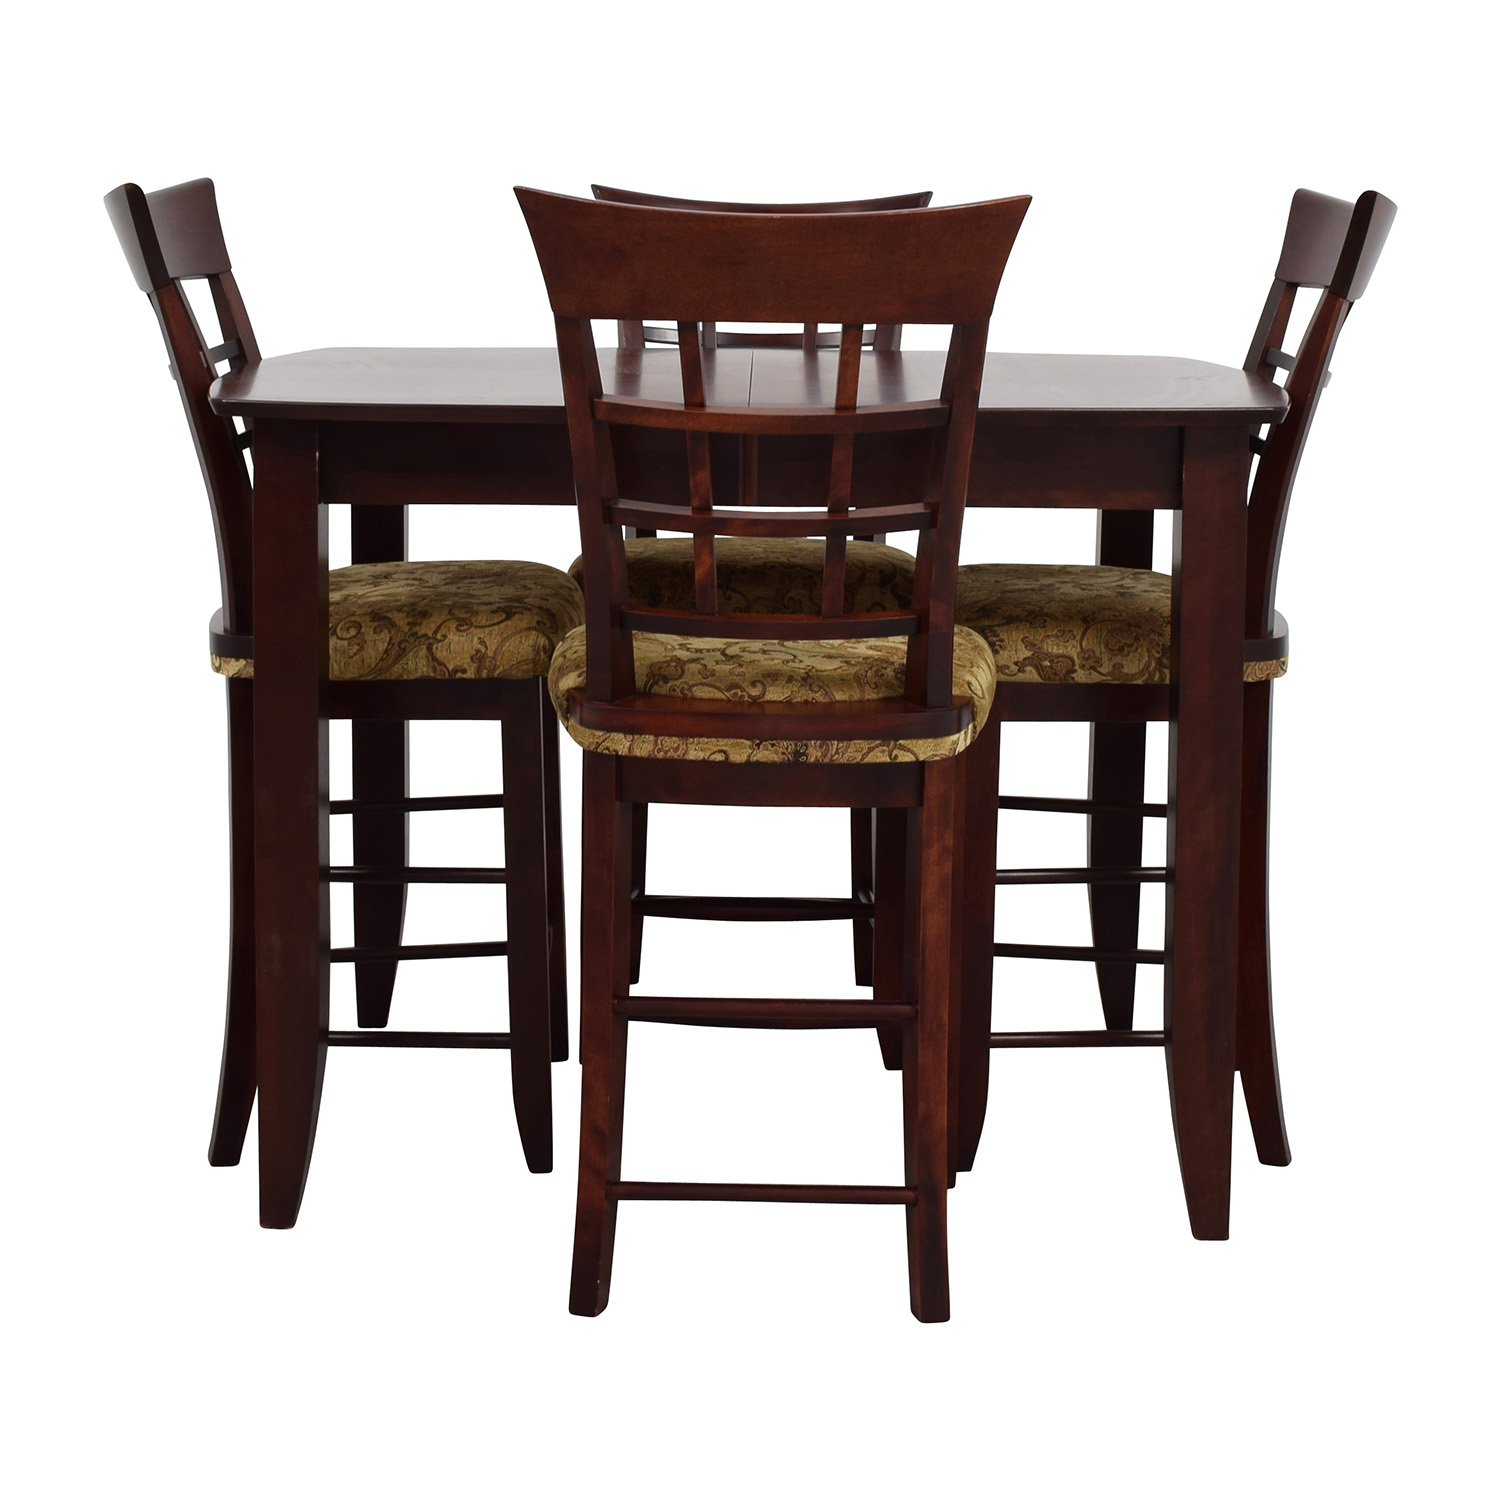 54% OFF Crate and Barrel Crate & Barrel Basque Java Dining Table